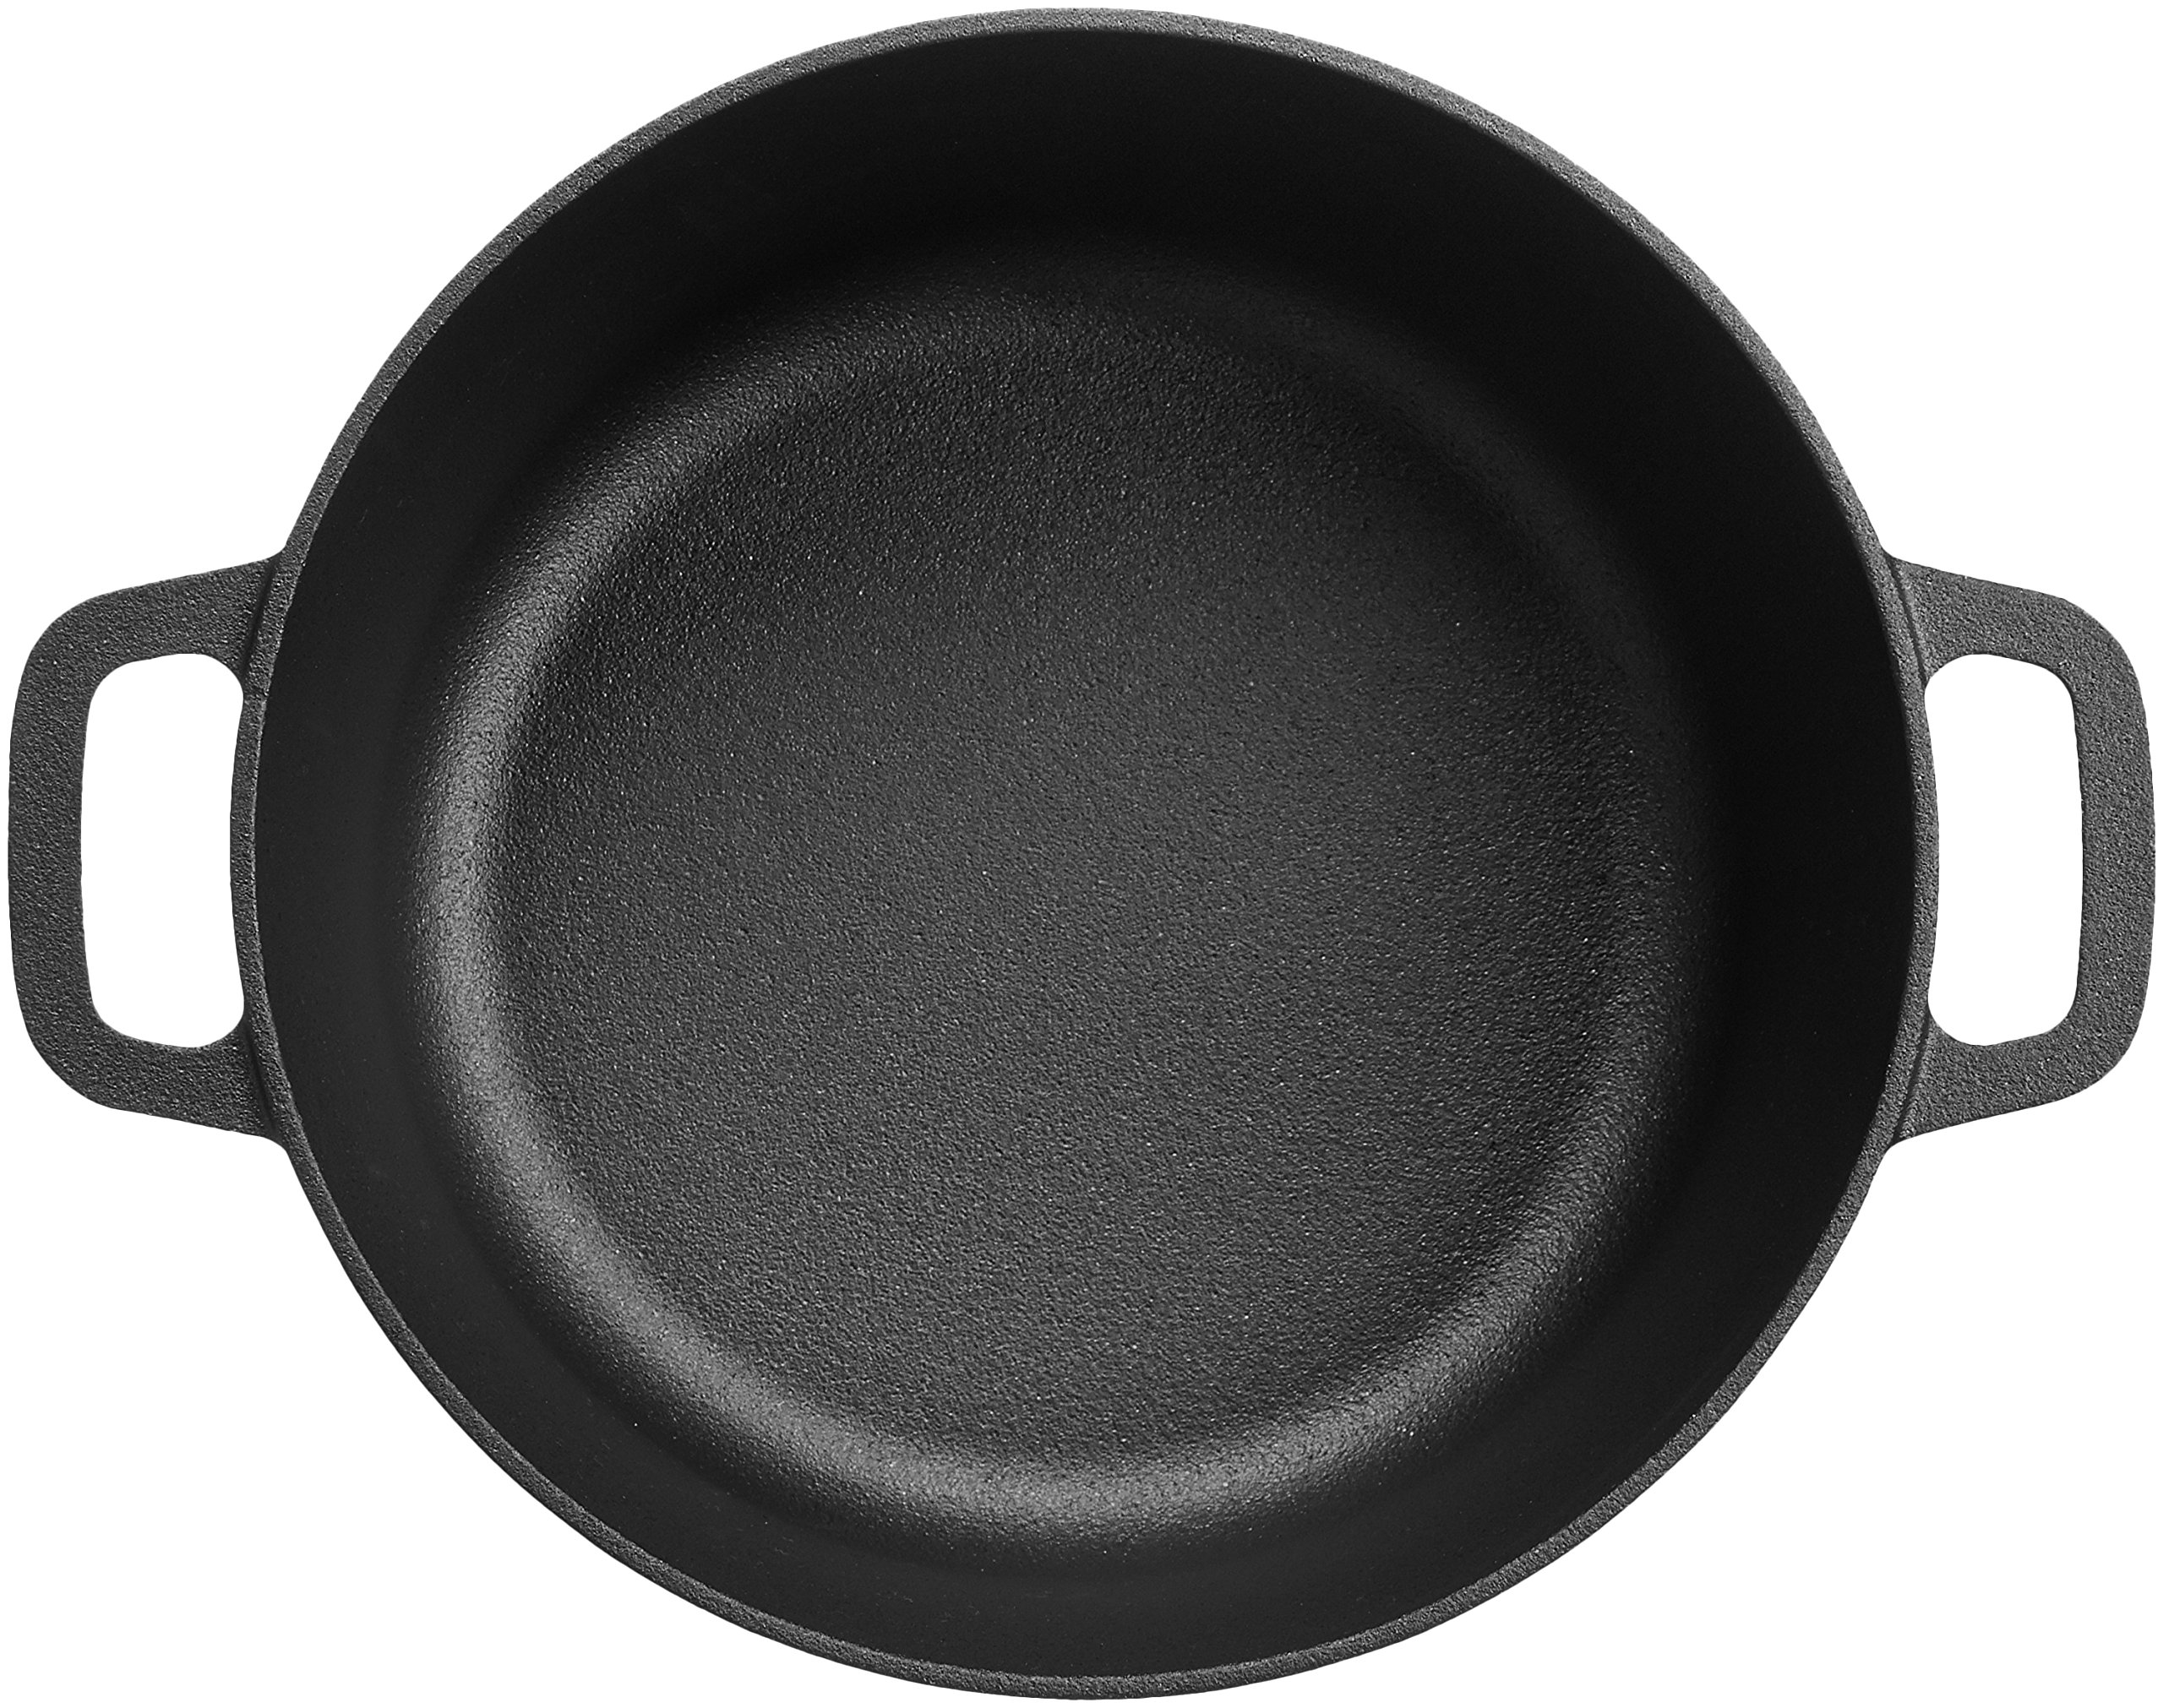 AmazonBasics Pre-Seasoned Cast Iron Dutch Oven with Dual Handles - 5-Quart by AmazonBasics (Image #5)